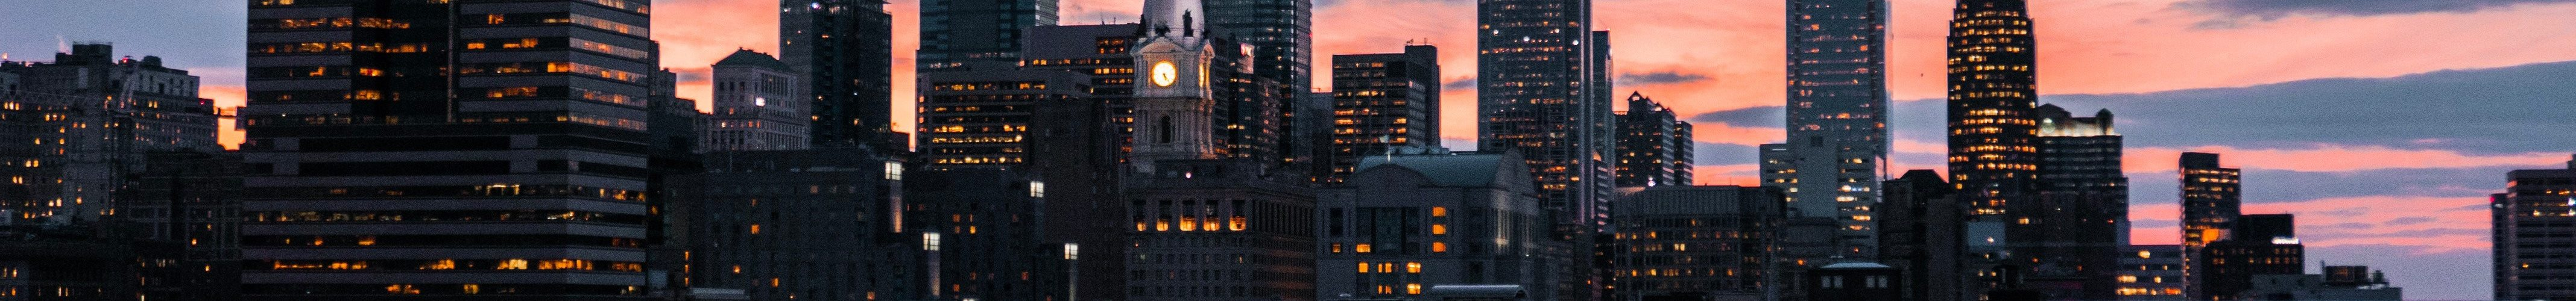 Moving to Philadelphia, Facts to Know - Skyline photo